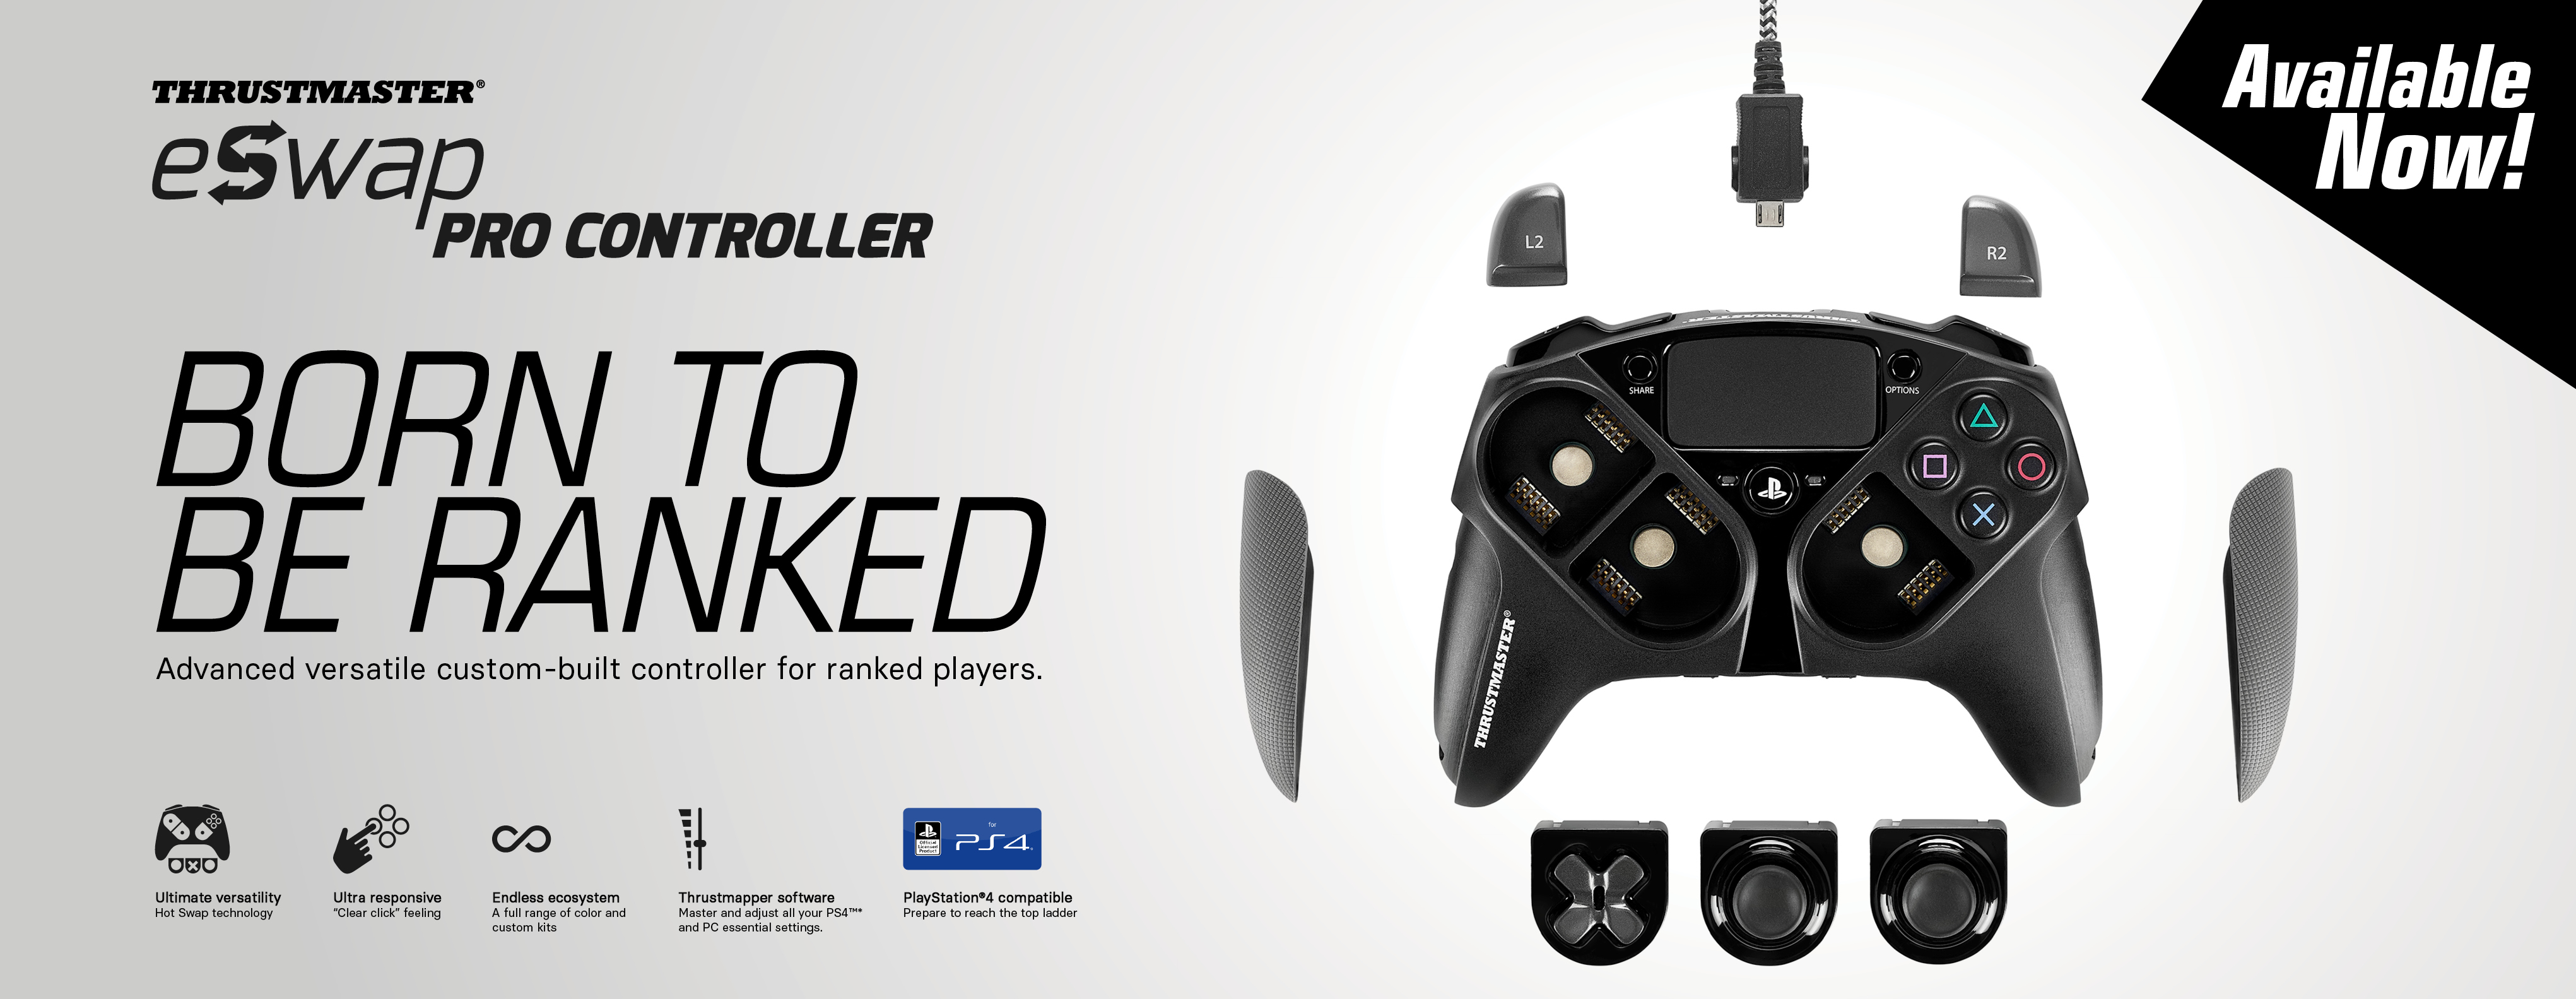 Best Thrustmaster Deals in South Africa